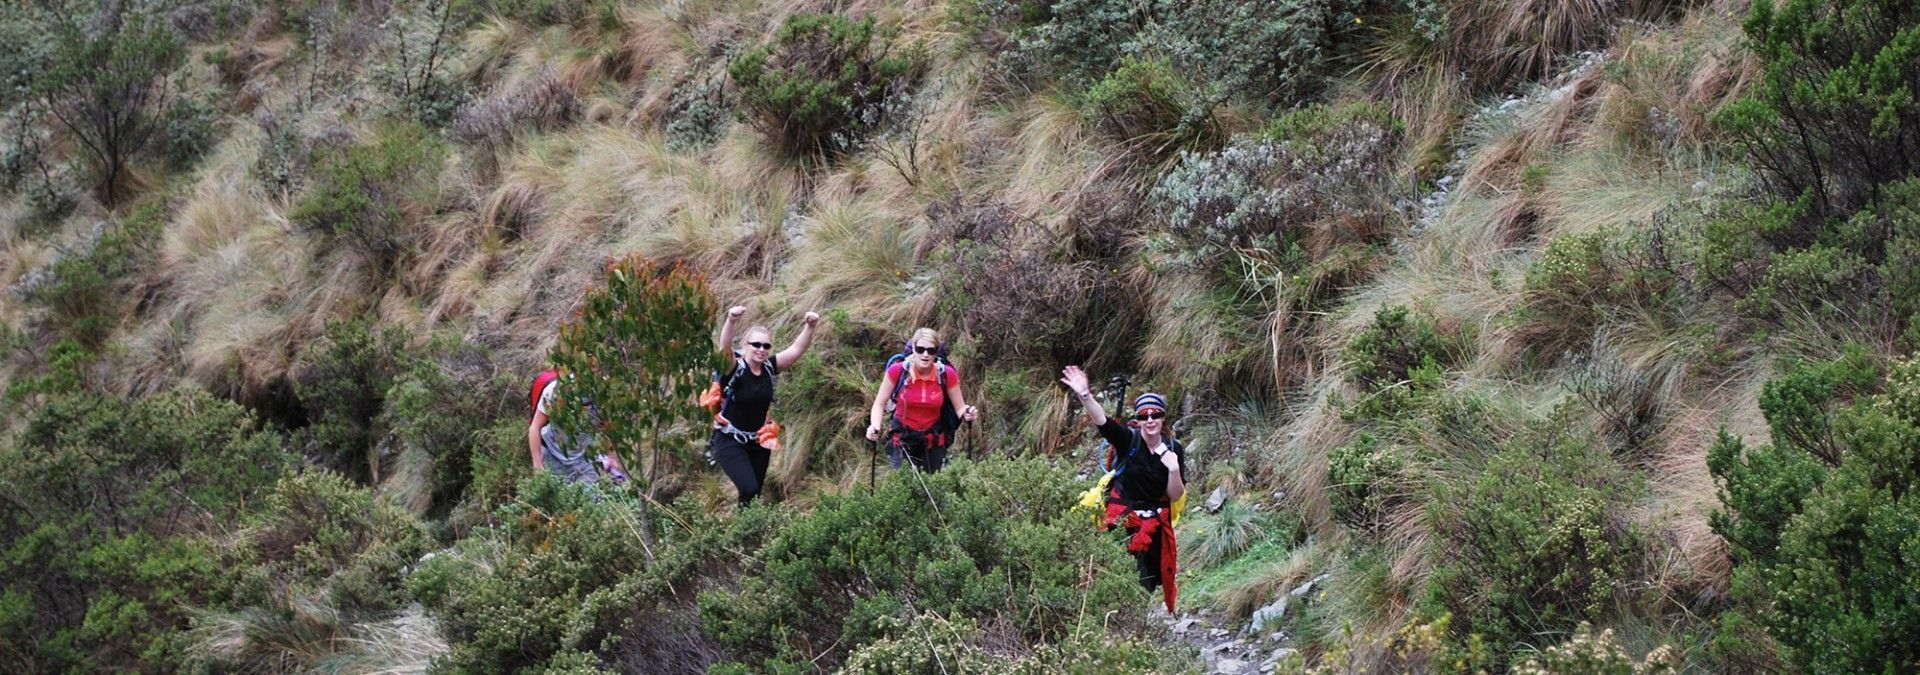 Trekking_Mountain_Path_Inca_Trail.jpg